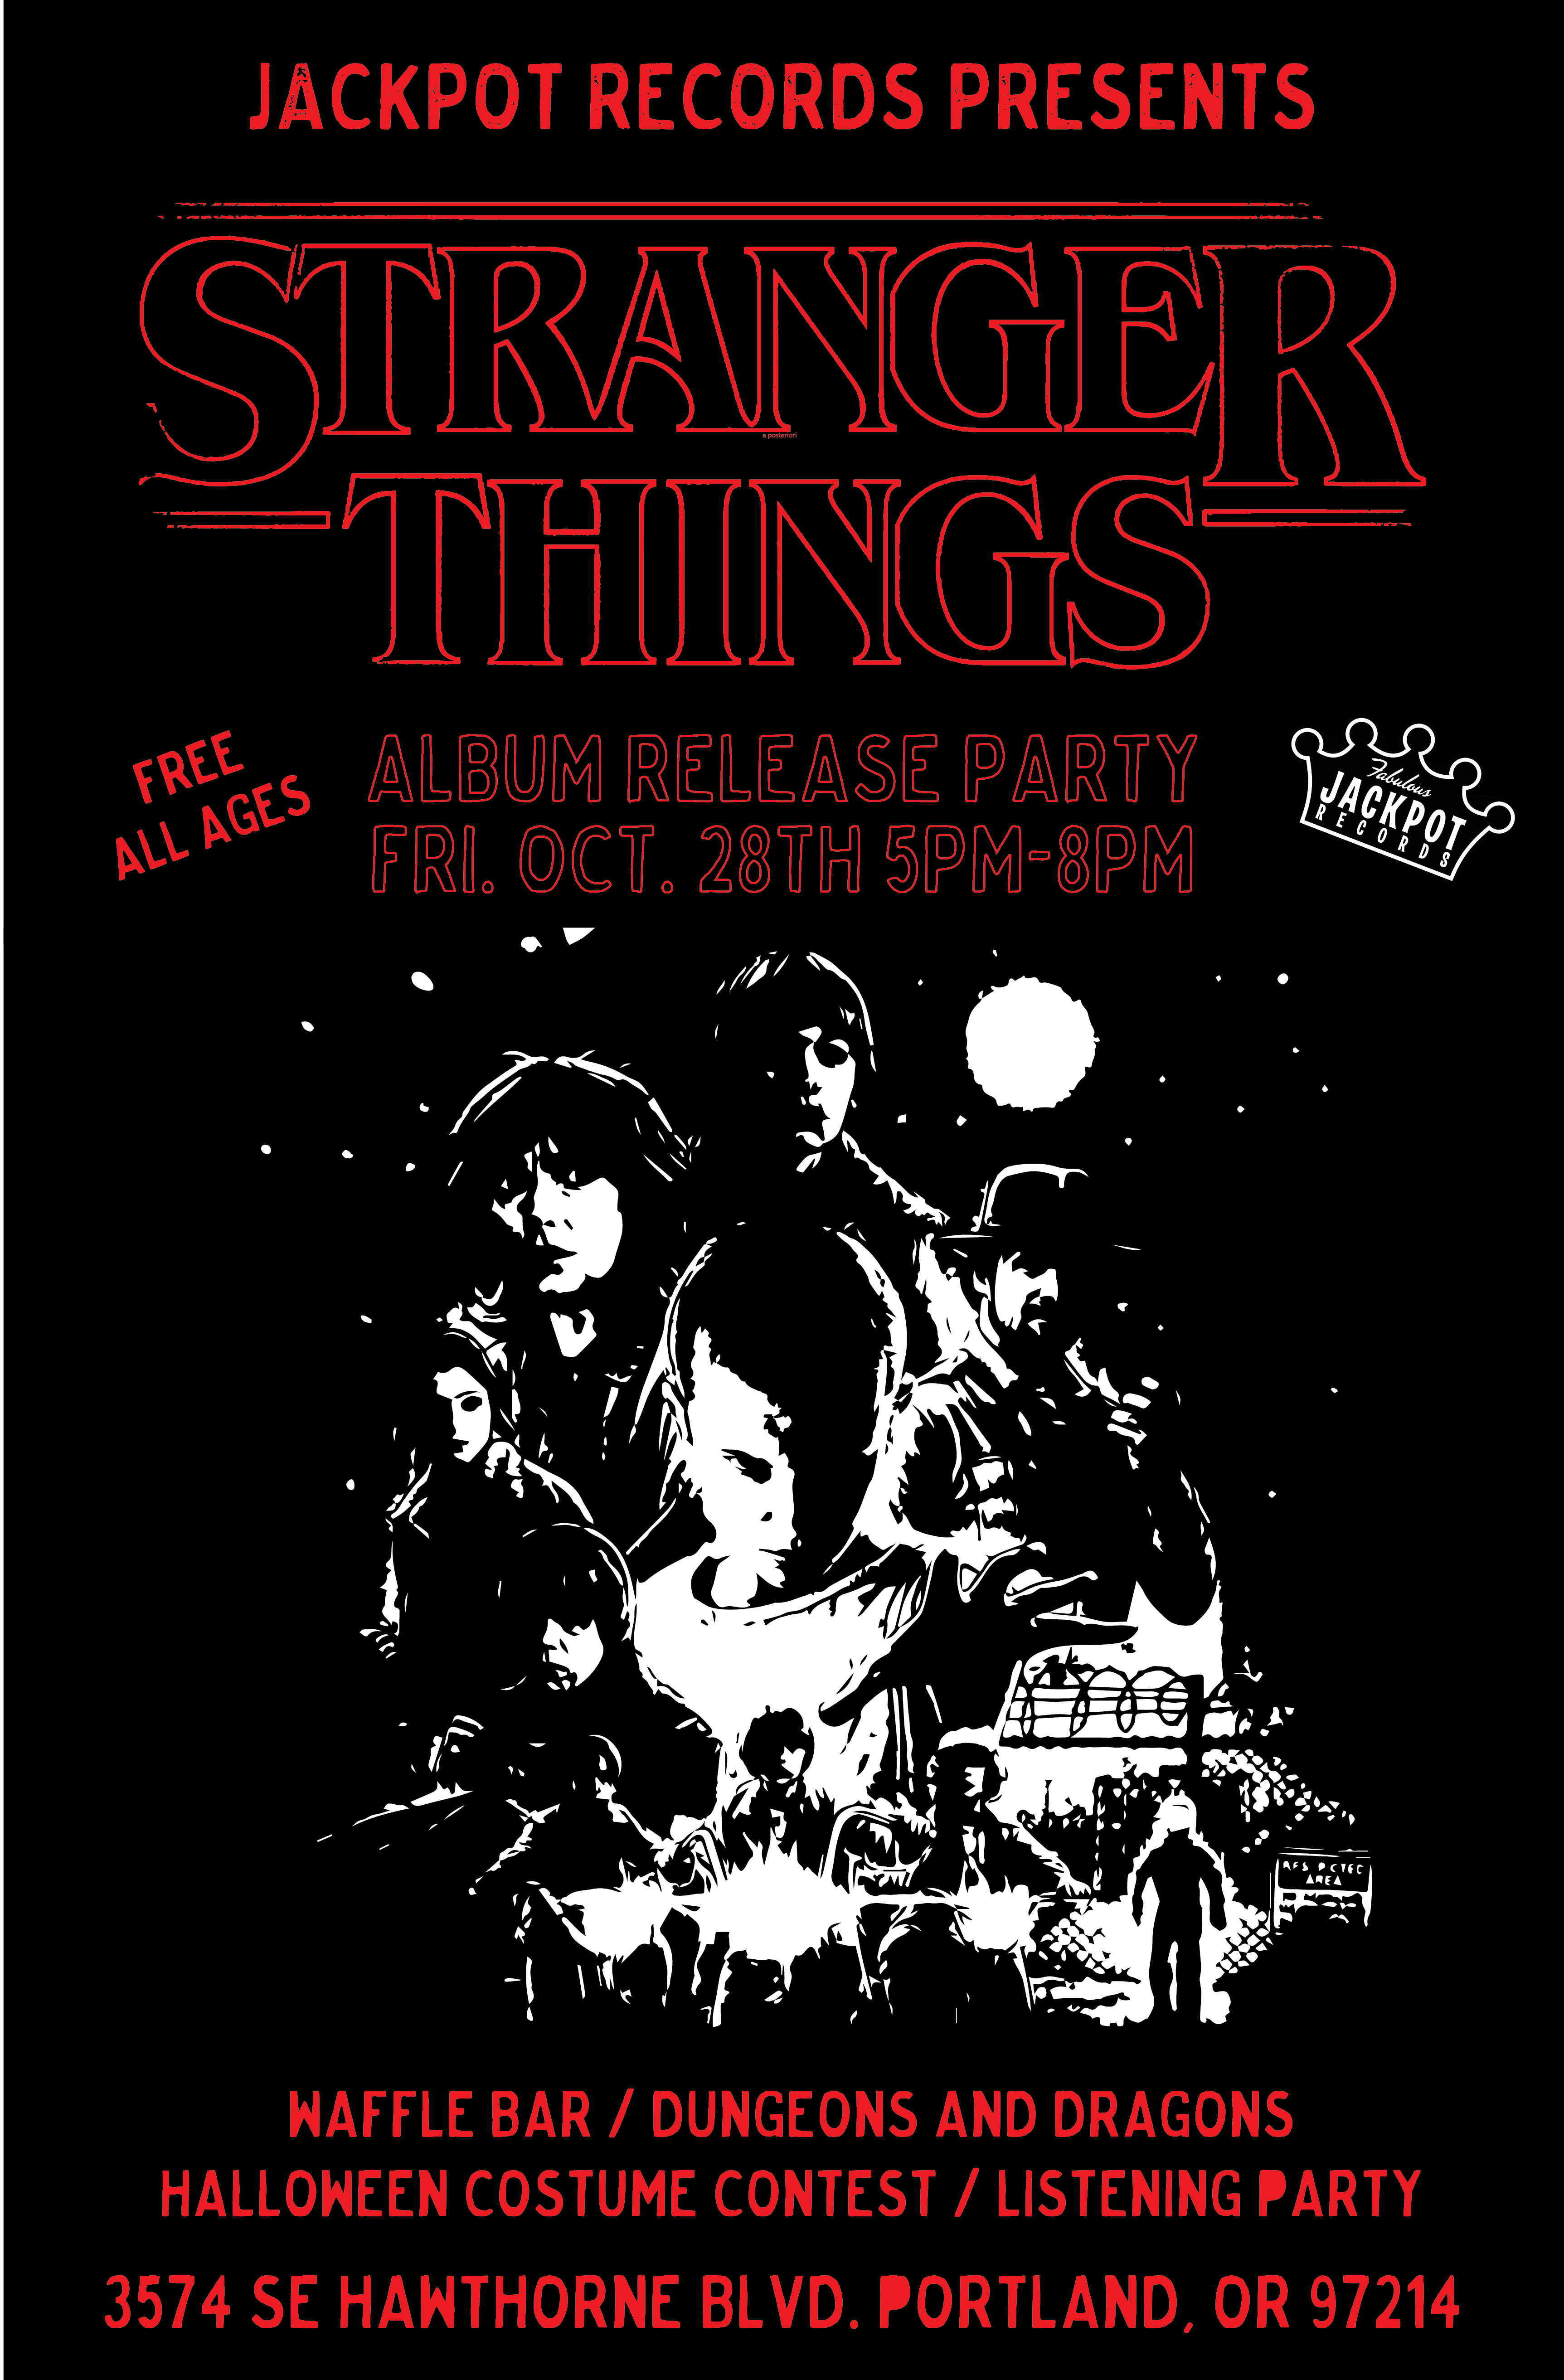 Stranger Things Album Release Party at Fabulous Jackpot Records ...